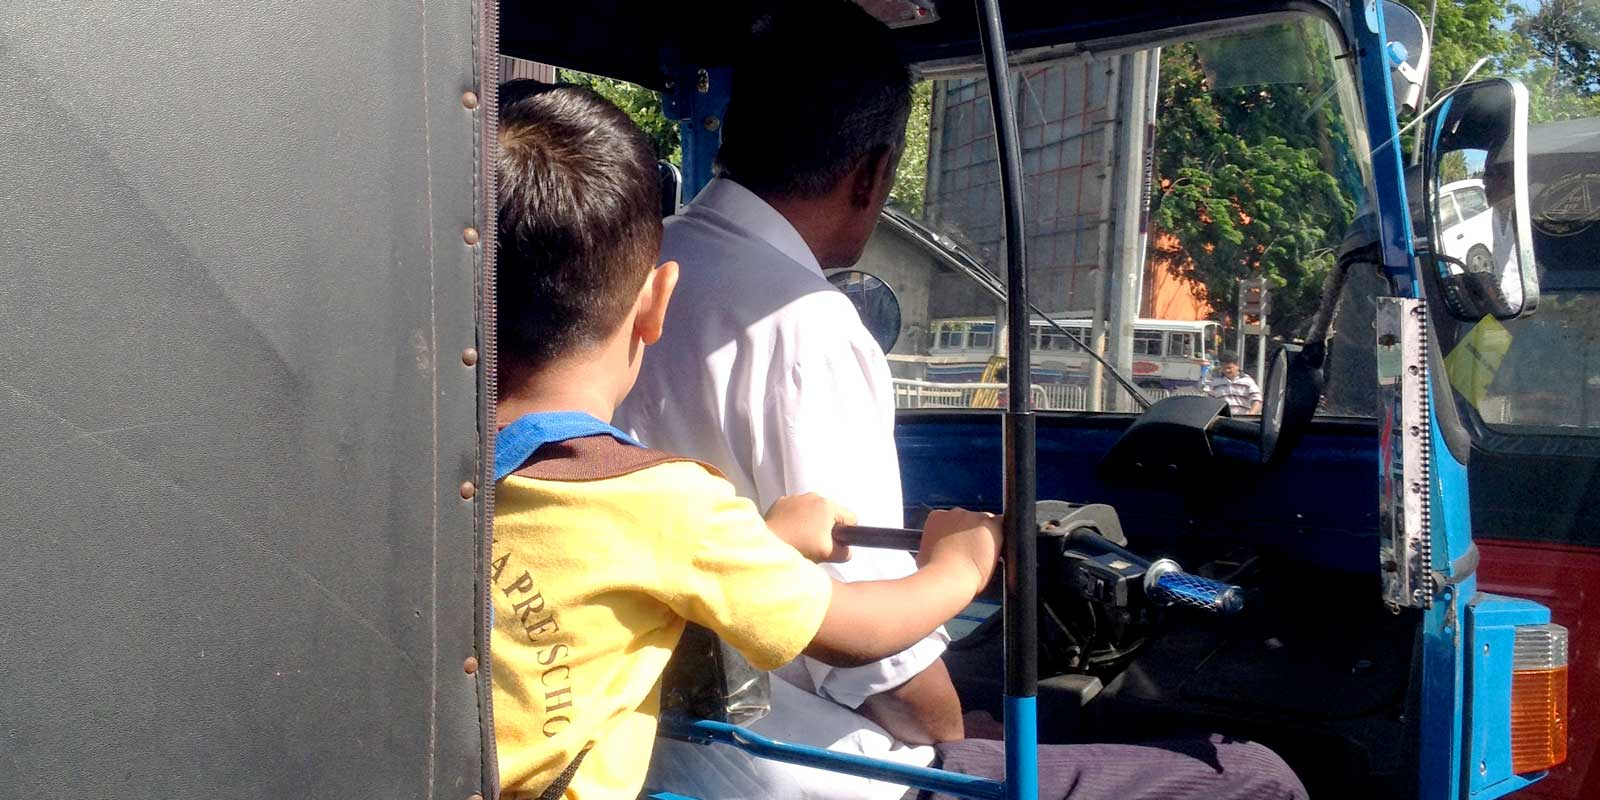 Tuk tuks are my favorite way to get around in Sri Lanka. Even this adorable schoolboy knows it's the best way to get around. It's cheap, you get a nice breeze, and you can get fun photos on your commute. Not for you? Come check out the other options for transportation in Sri Lanka.